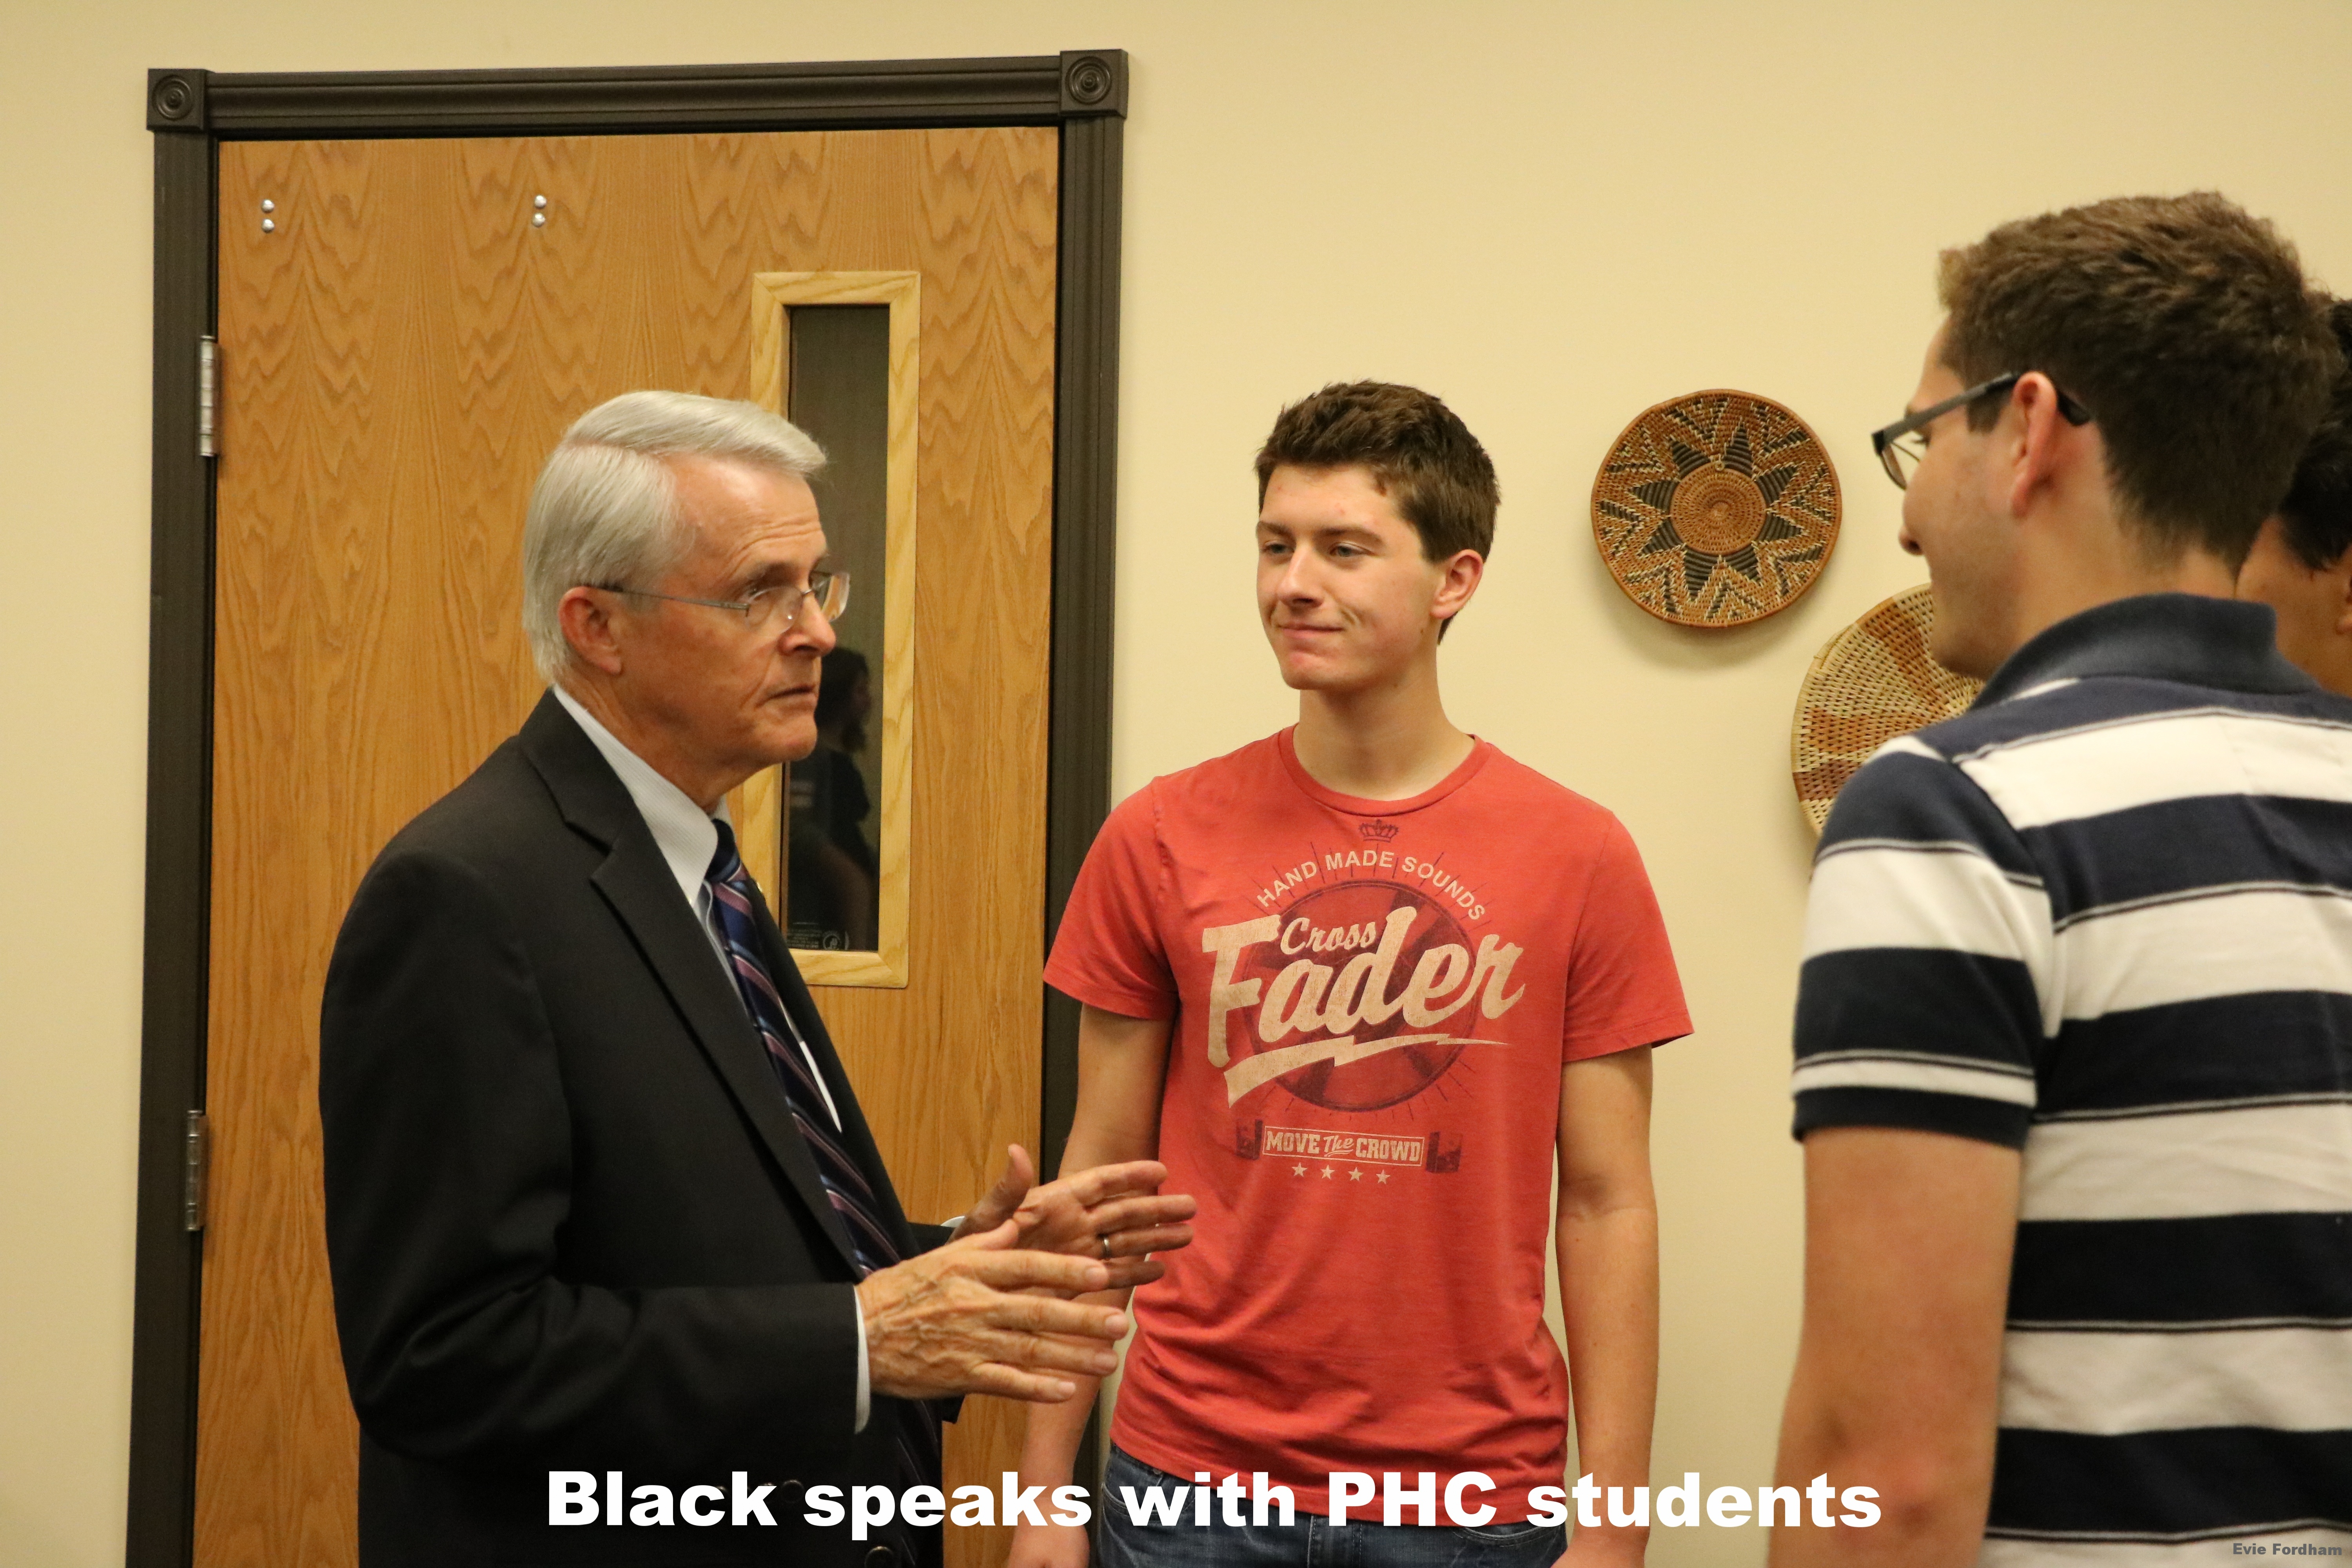 Black speaks with PHC students